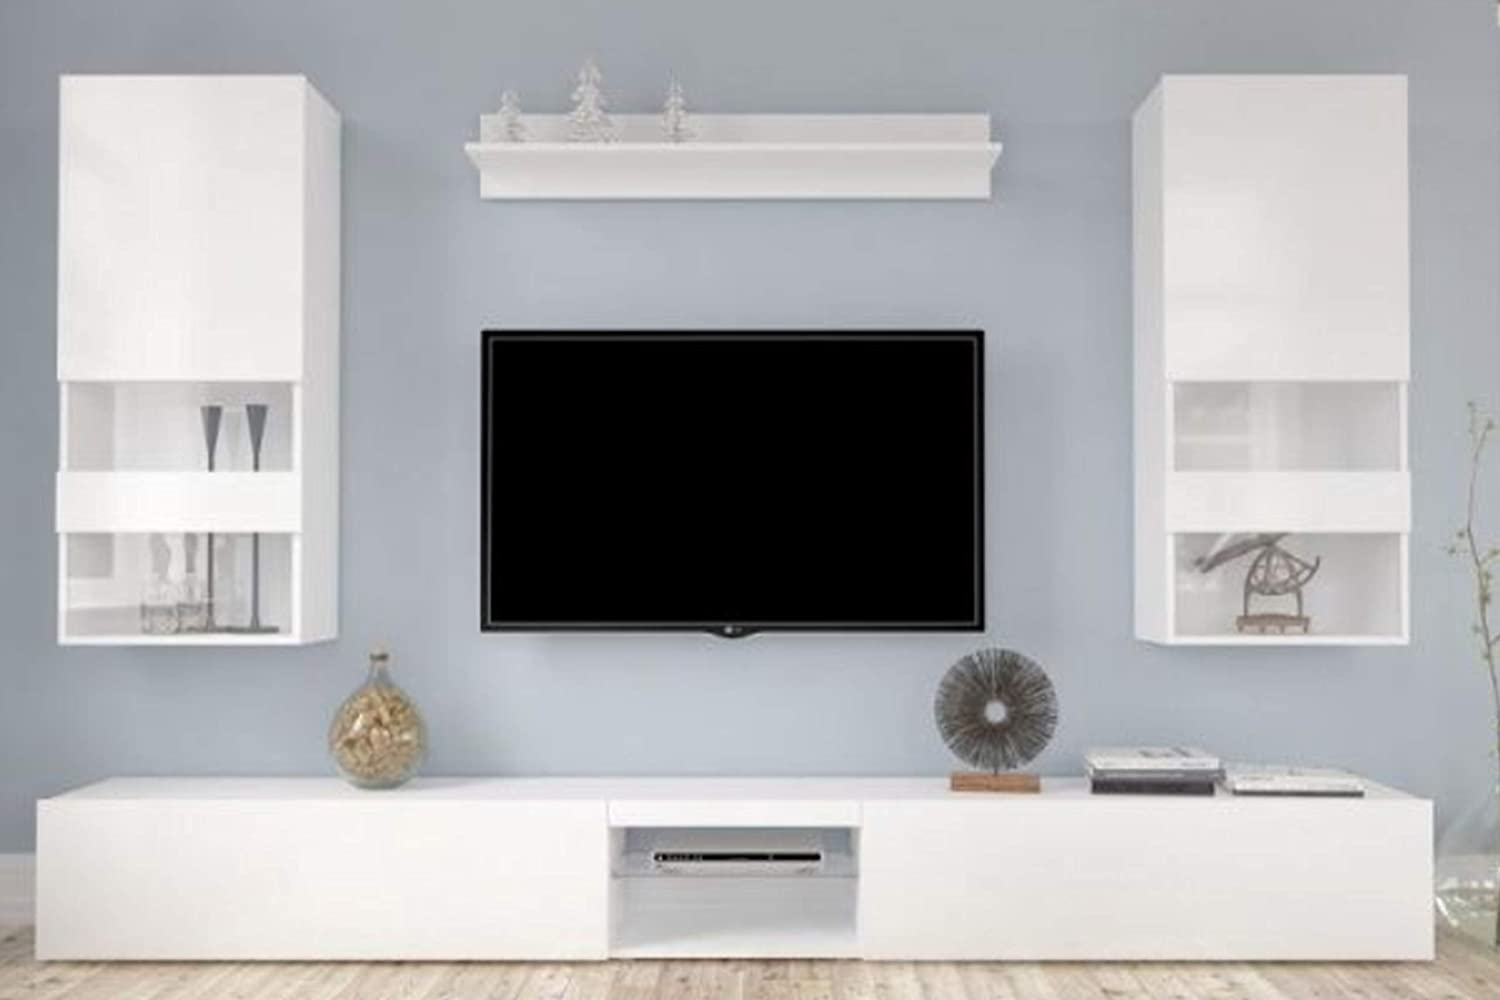 Hm tv unit tv stand entertainment center for tvs decorative furniture for house amazon in home kitchen